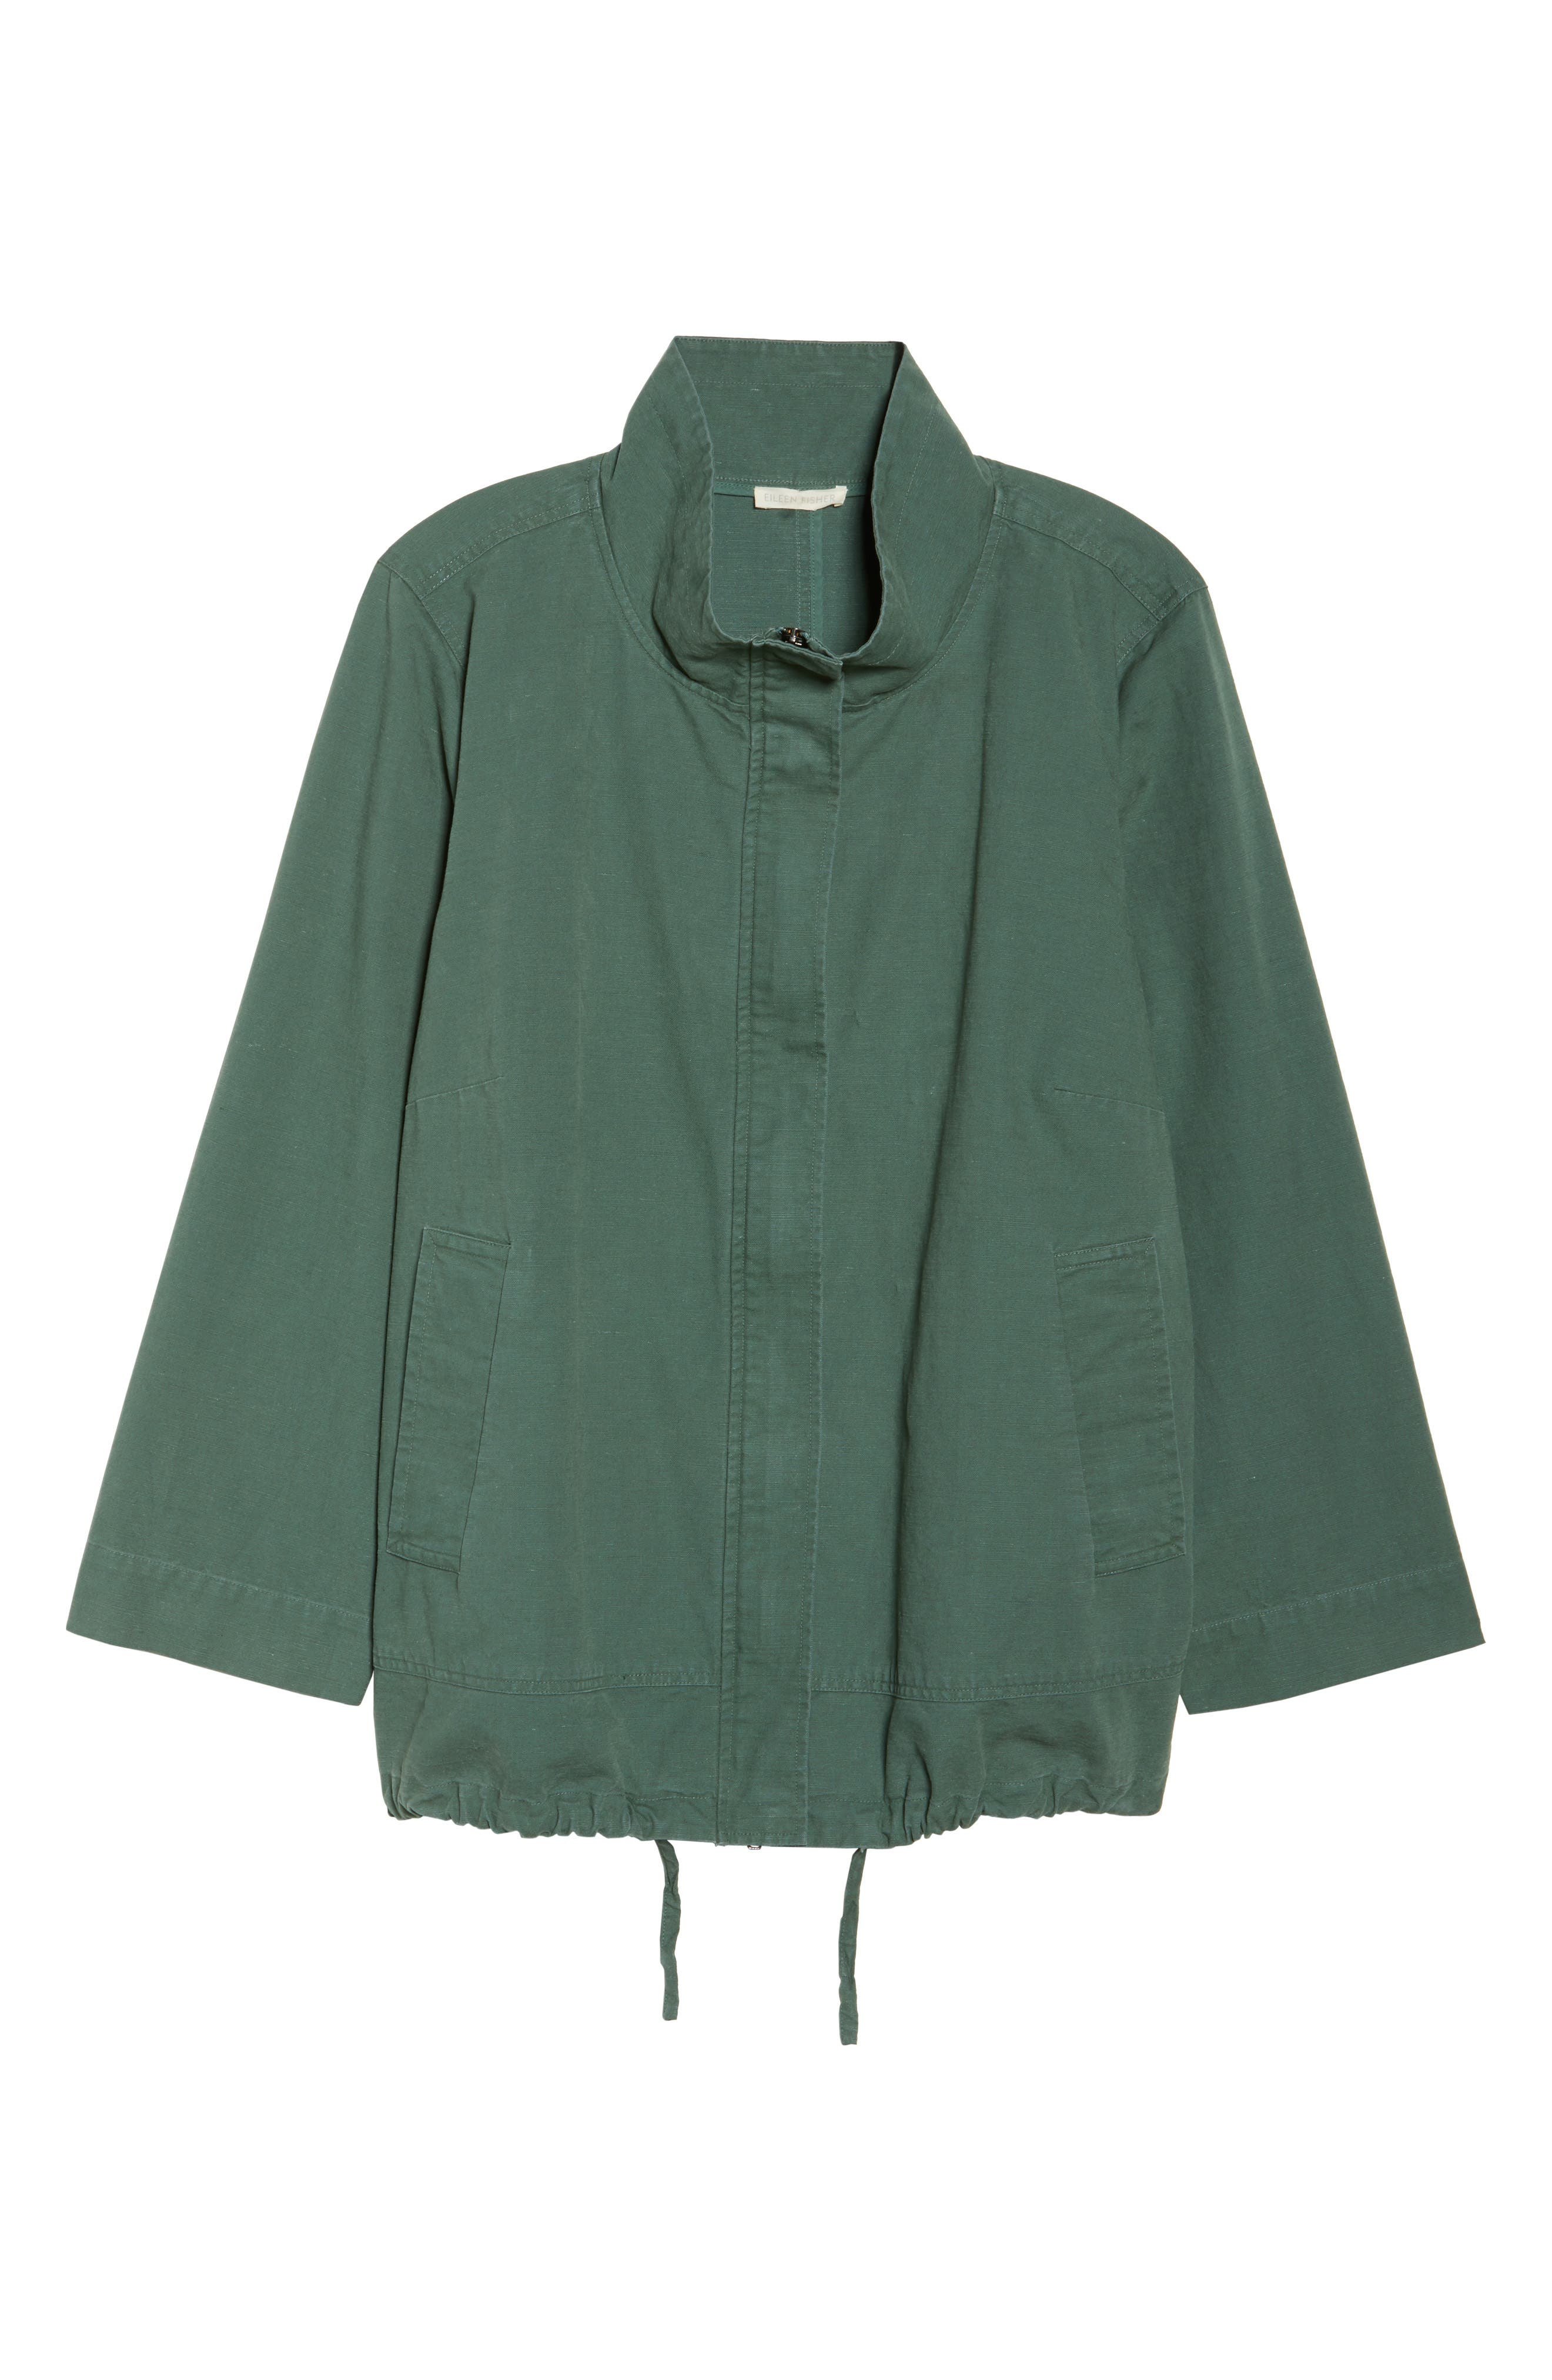 Stand Collar Jacket,                             Alternate thumbnail 6, color,                             Nori